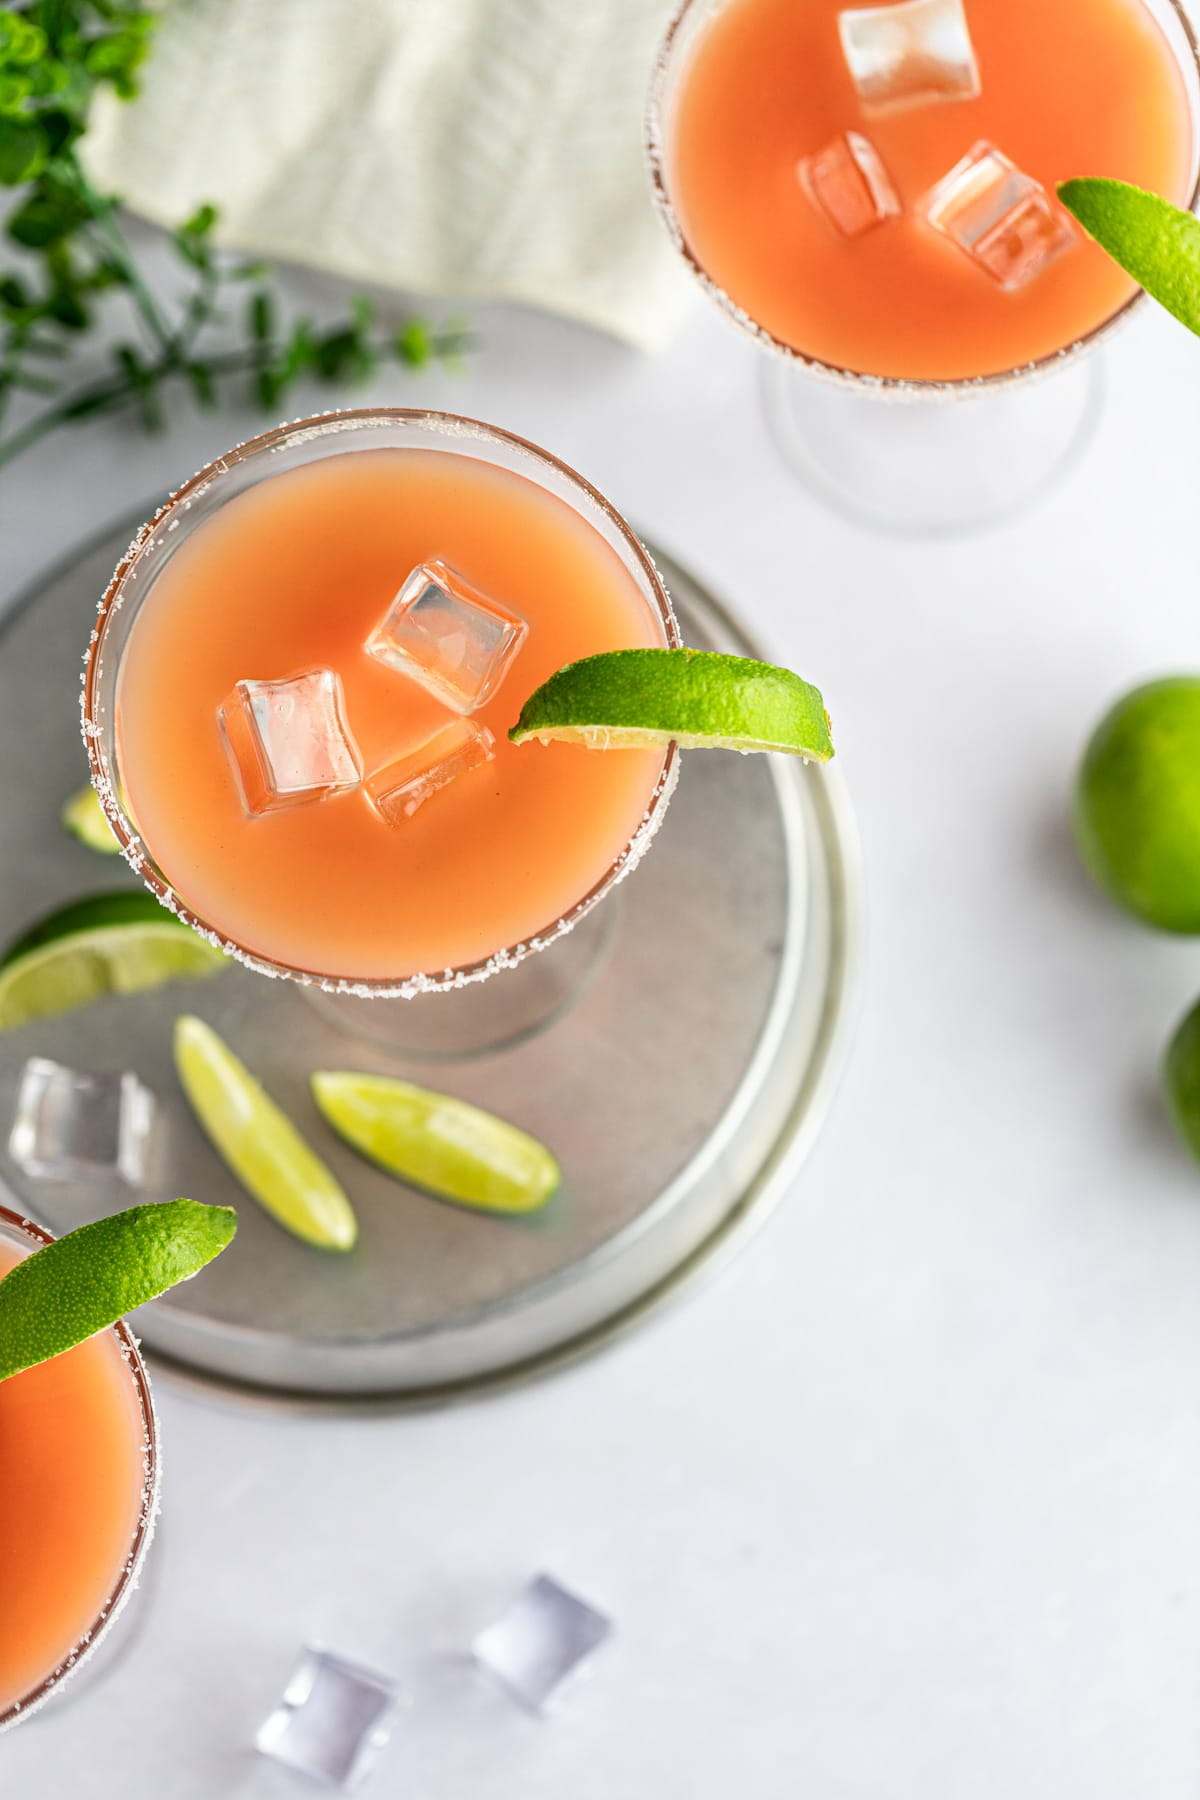 Overhead photo of three margaritas, with salt around the rims of the glass and each drink garnished with a lime slice.